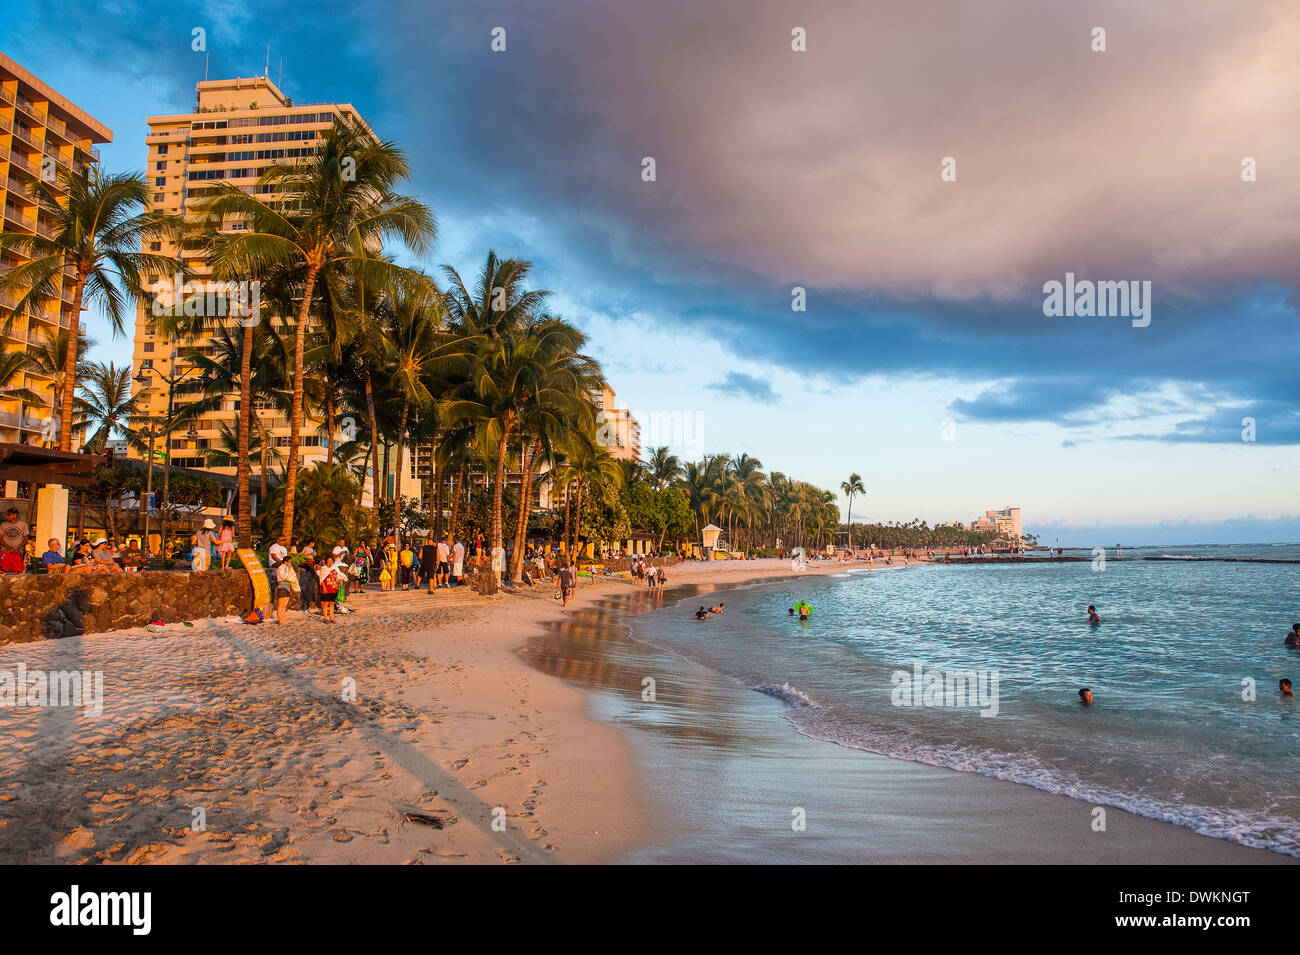 Late afternoon sun over the hotels on Waikiki Beach, Oahu, Hawaii, United States of America, Pacific - Stock Image